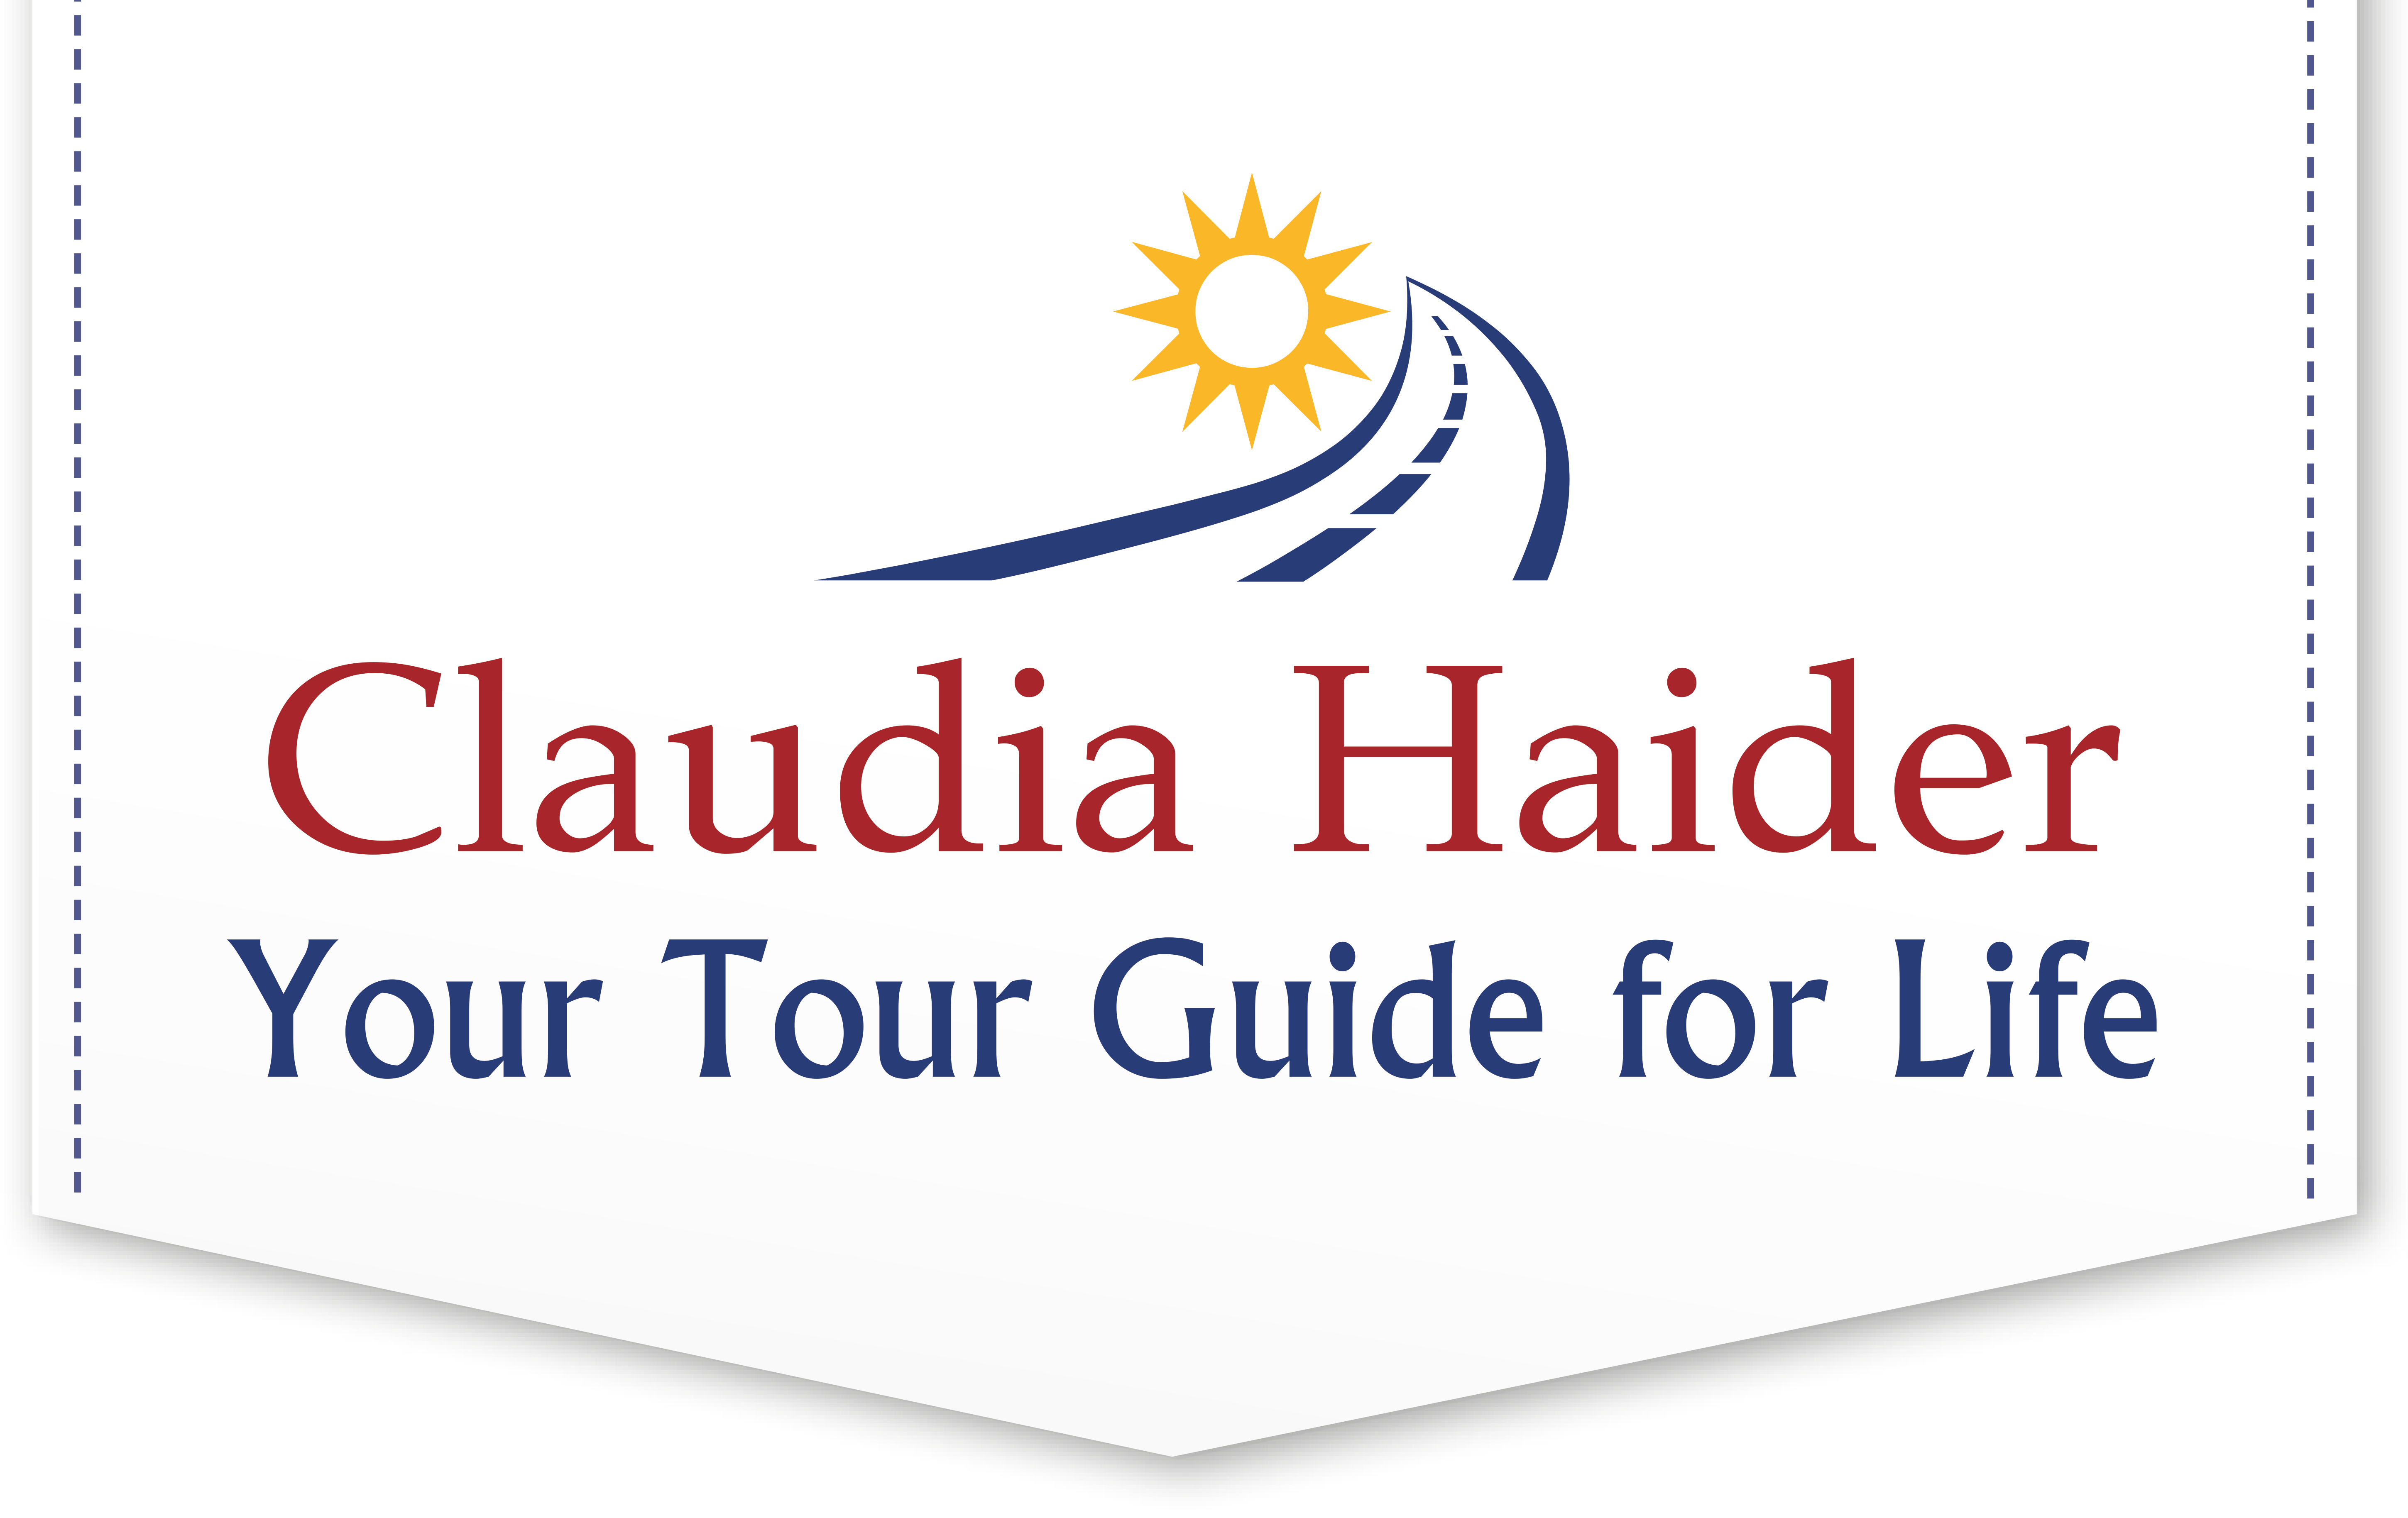 Your Tour Guide for Life